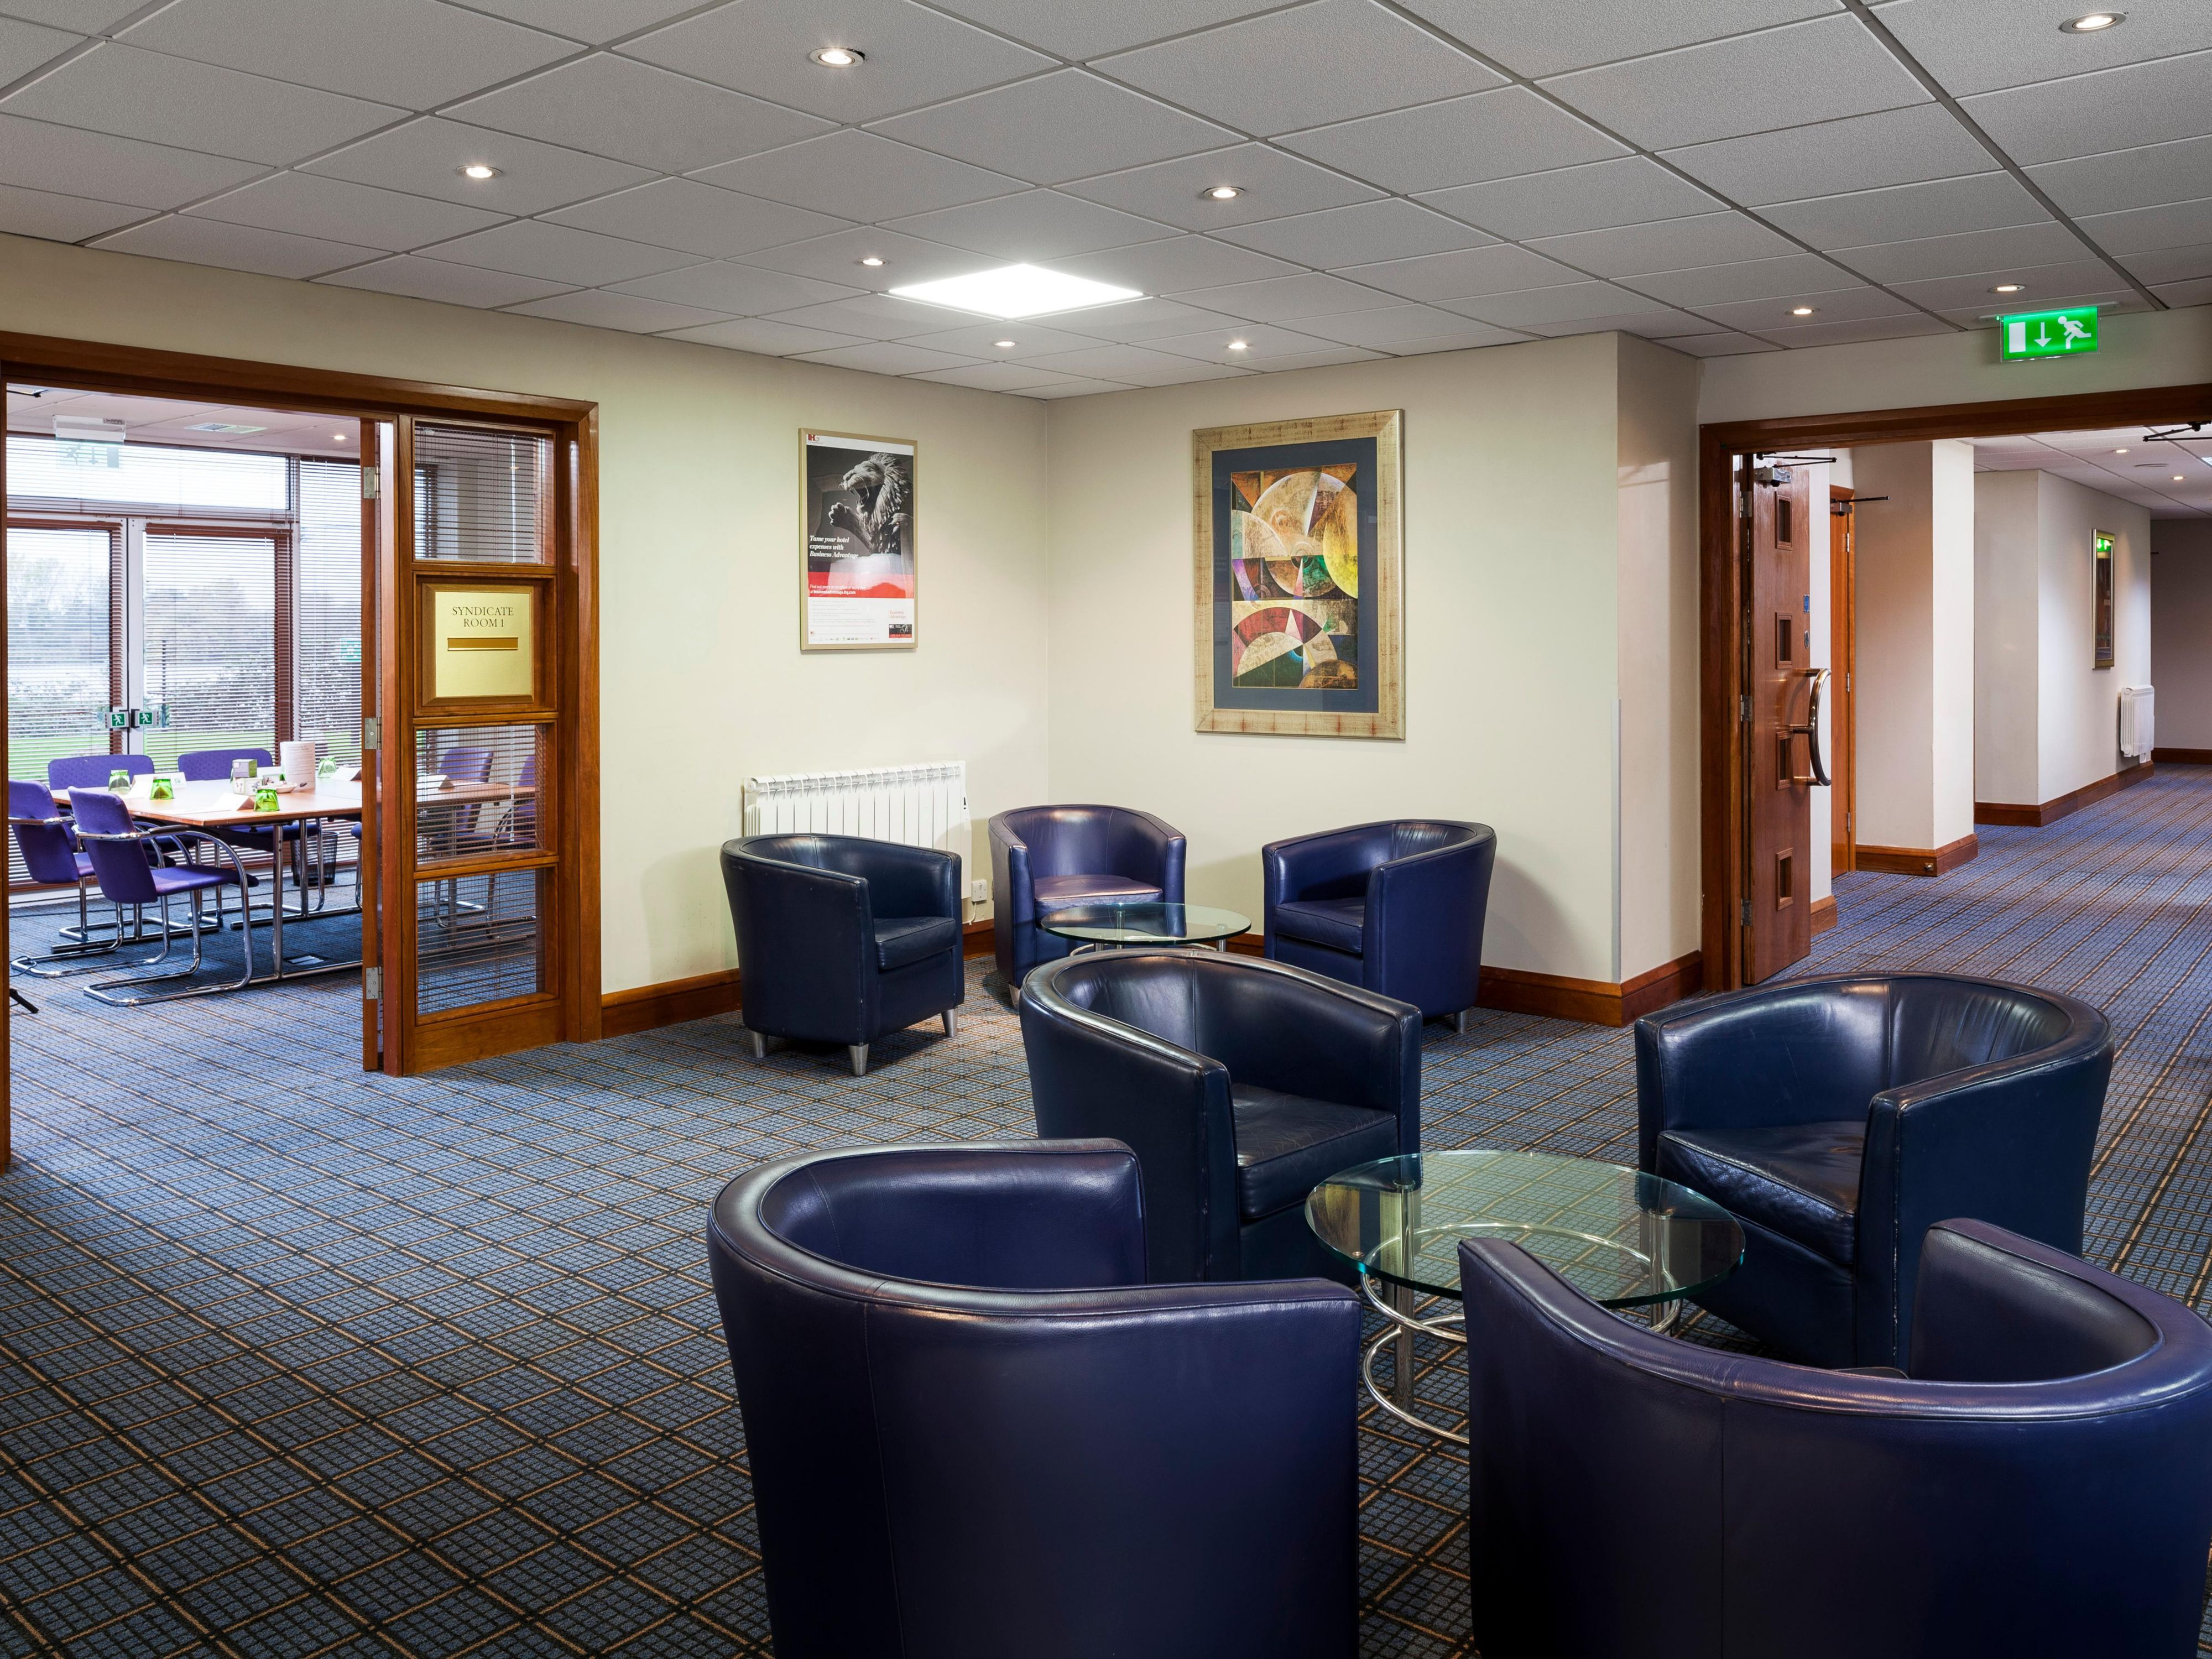 Our Academy breakout area ideal for meetings and buffet lunches